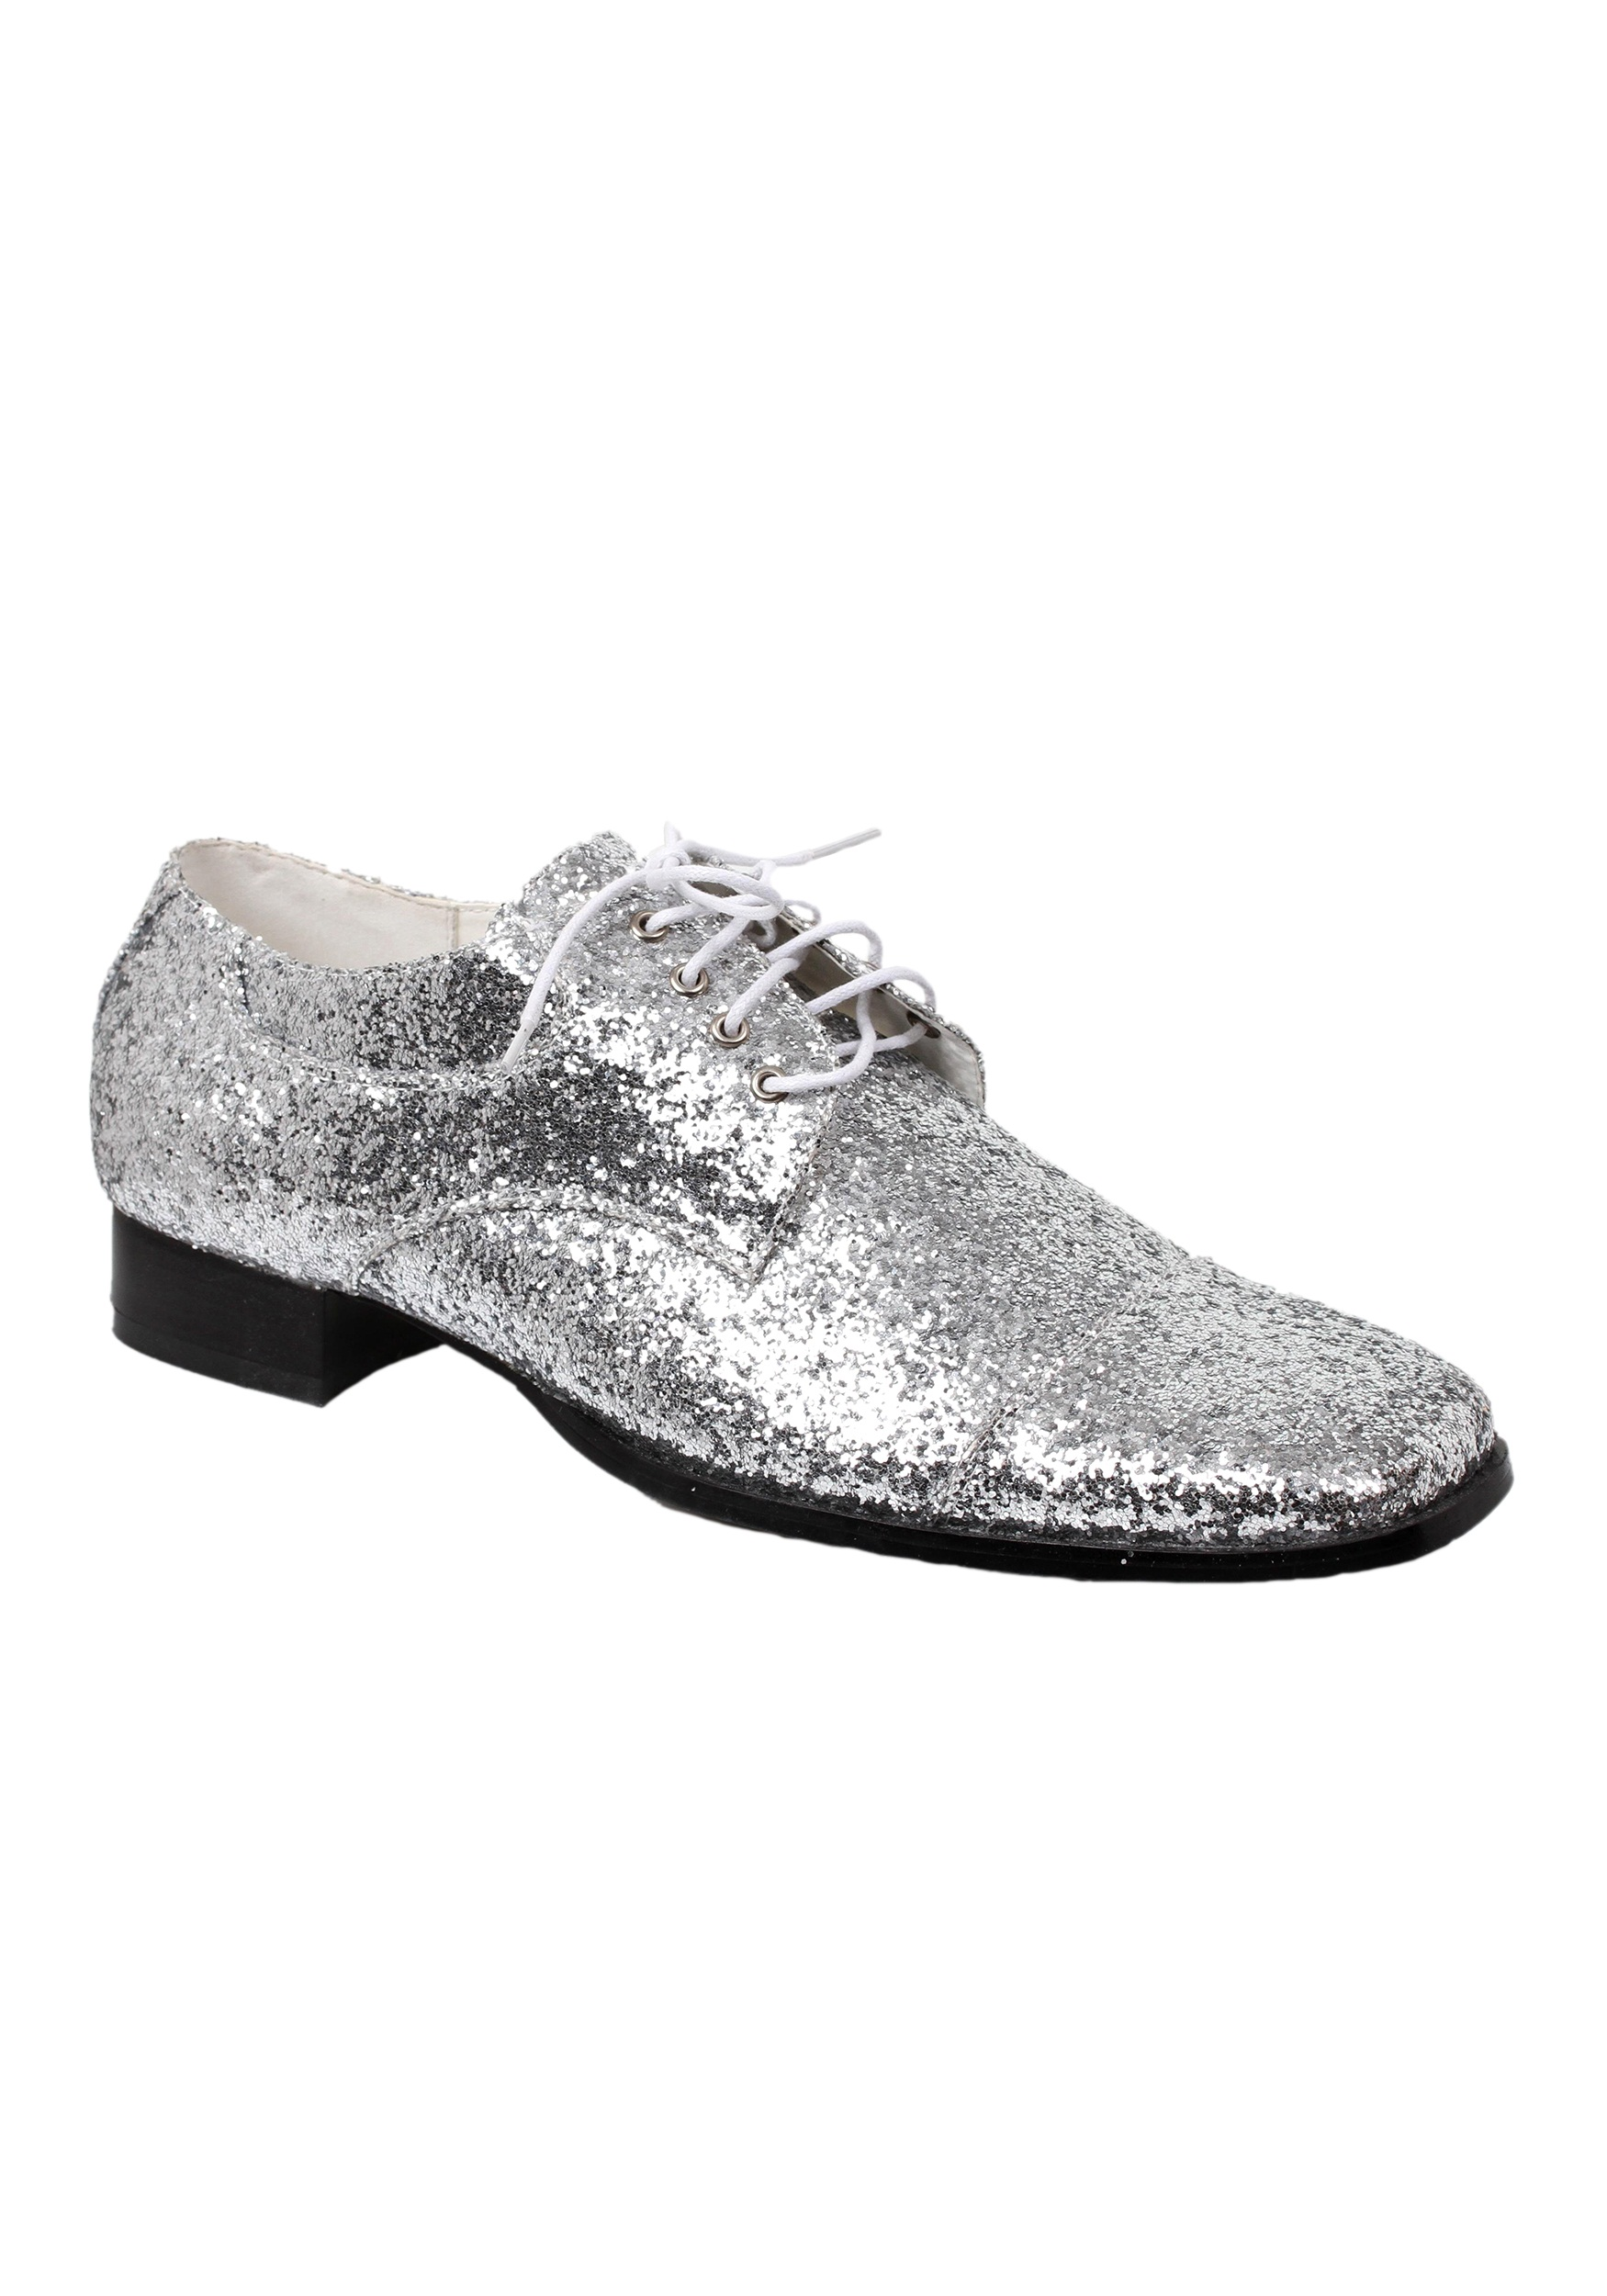 Men's Silver Glitter Disco Shoes